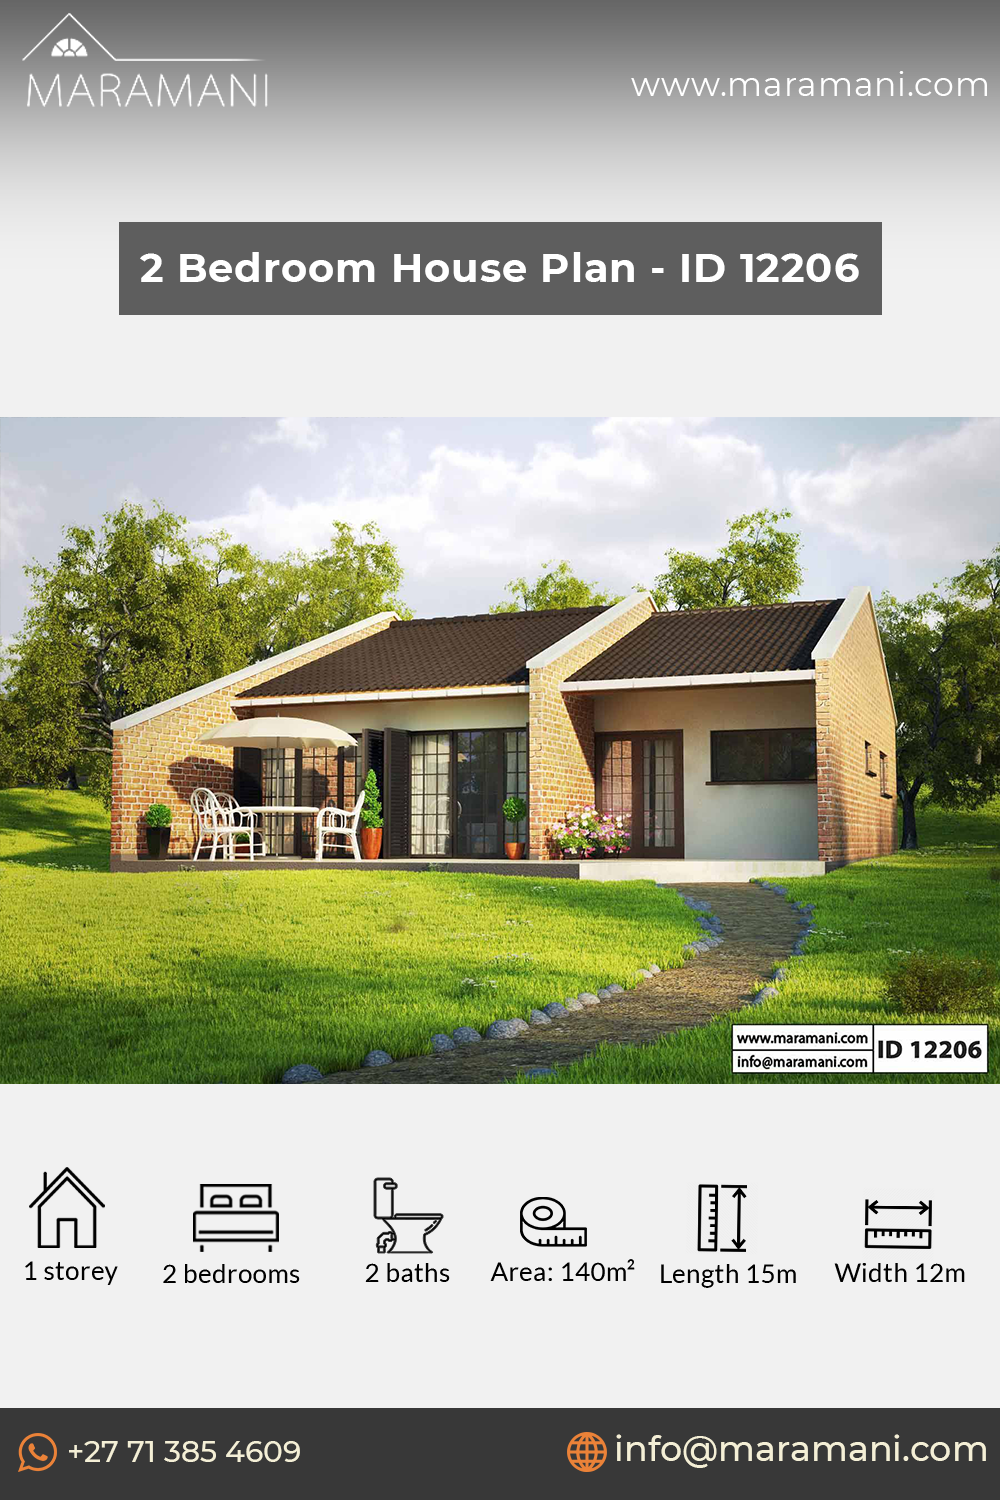 Small Brick House Design Id 12206 House Plans By Maramani In 2020 Bedroom House Plans Brick House Designs 1 Bedroom House Plans